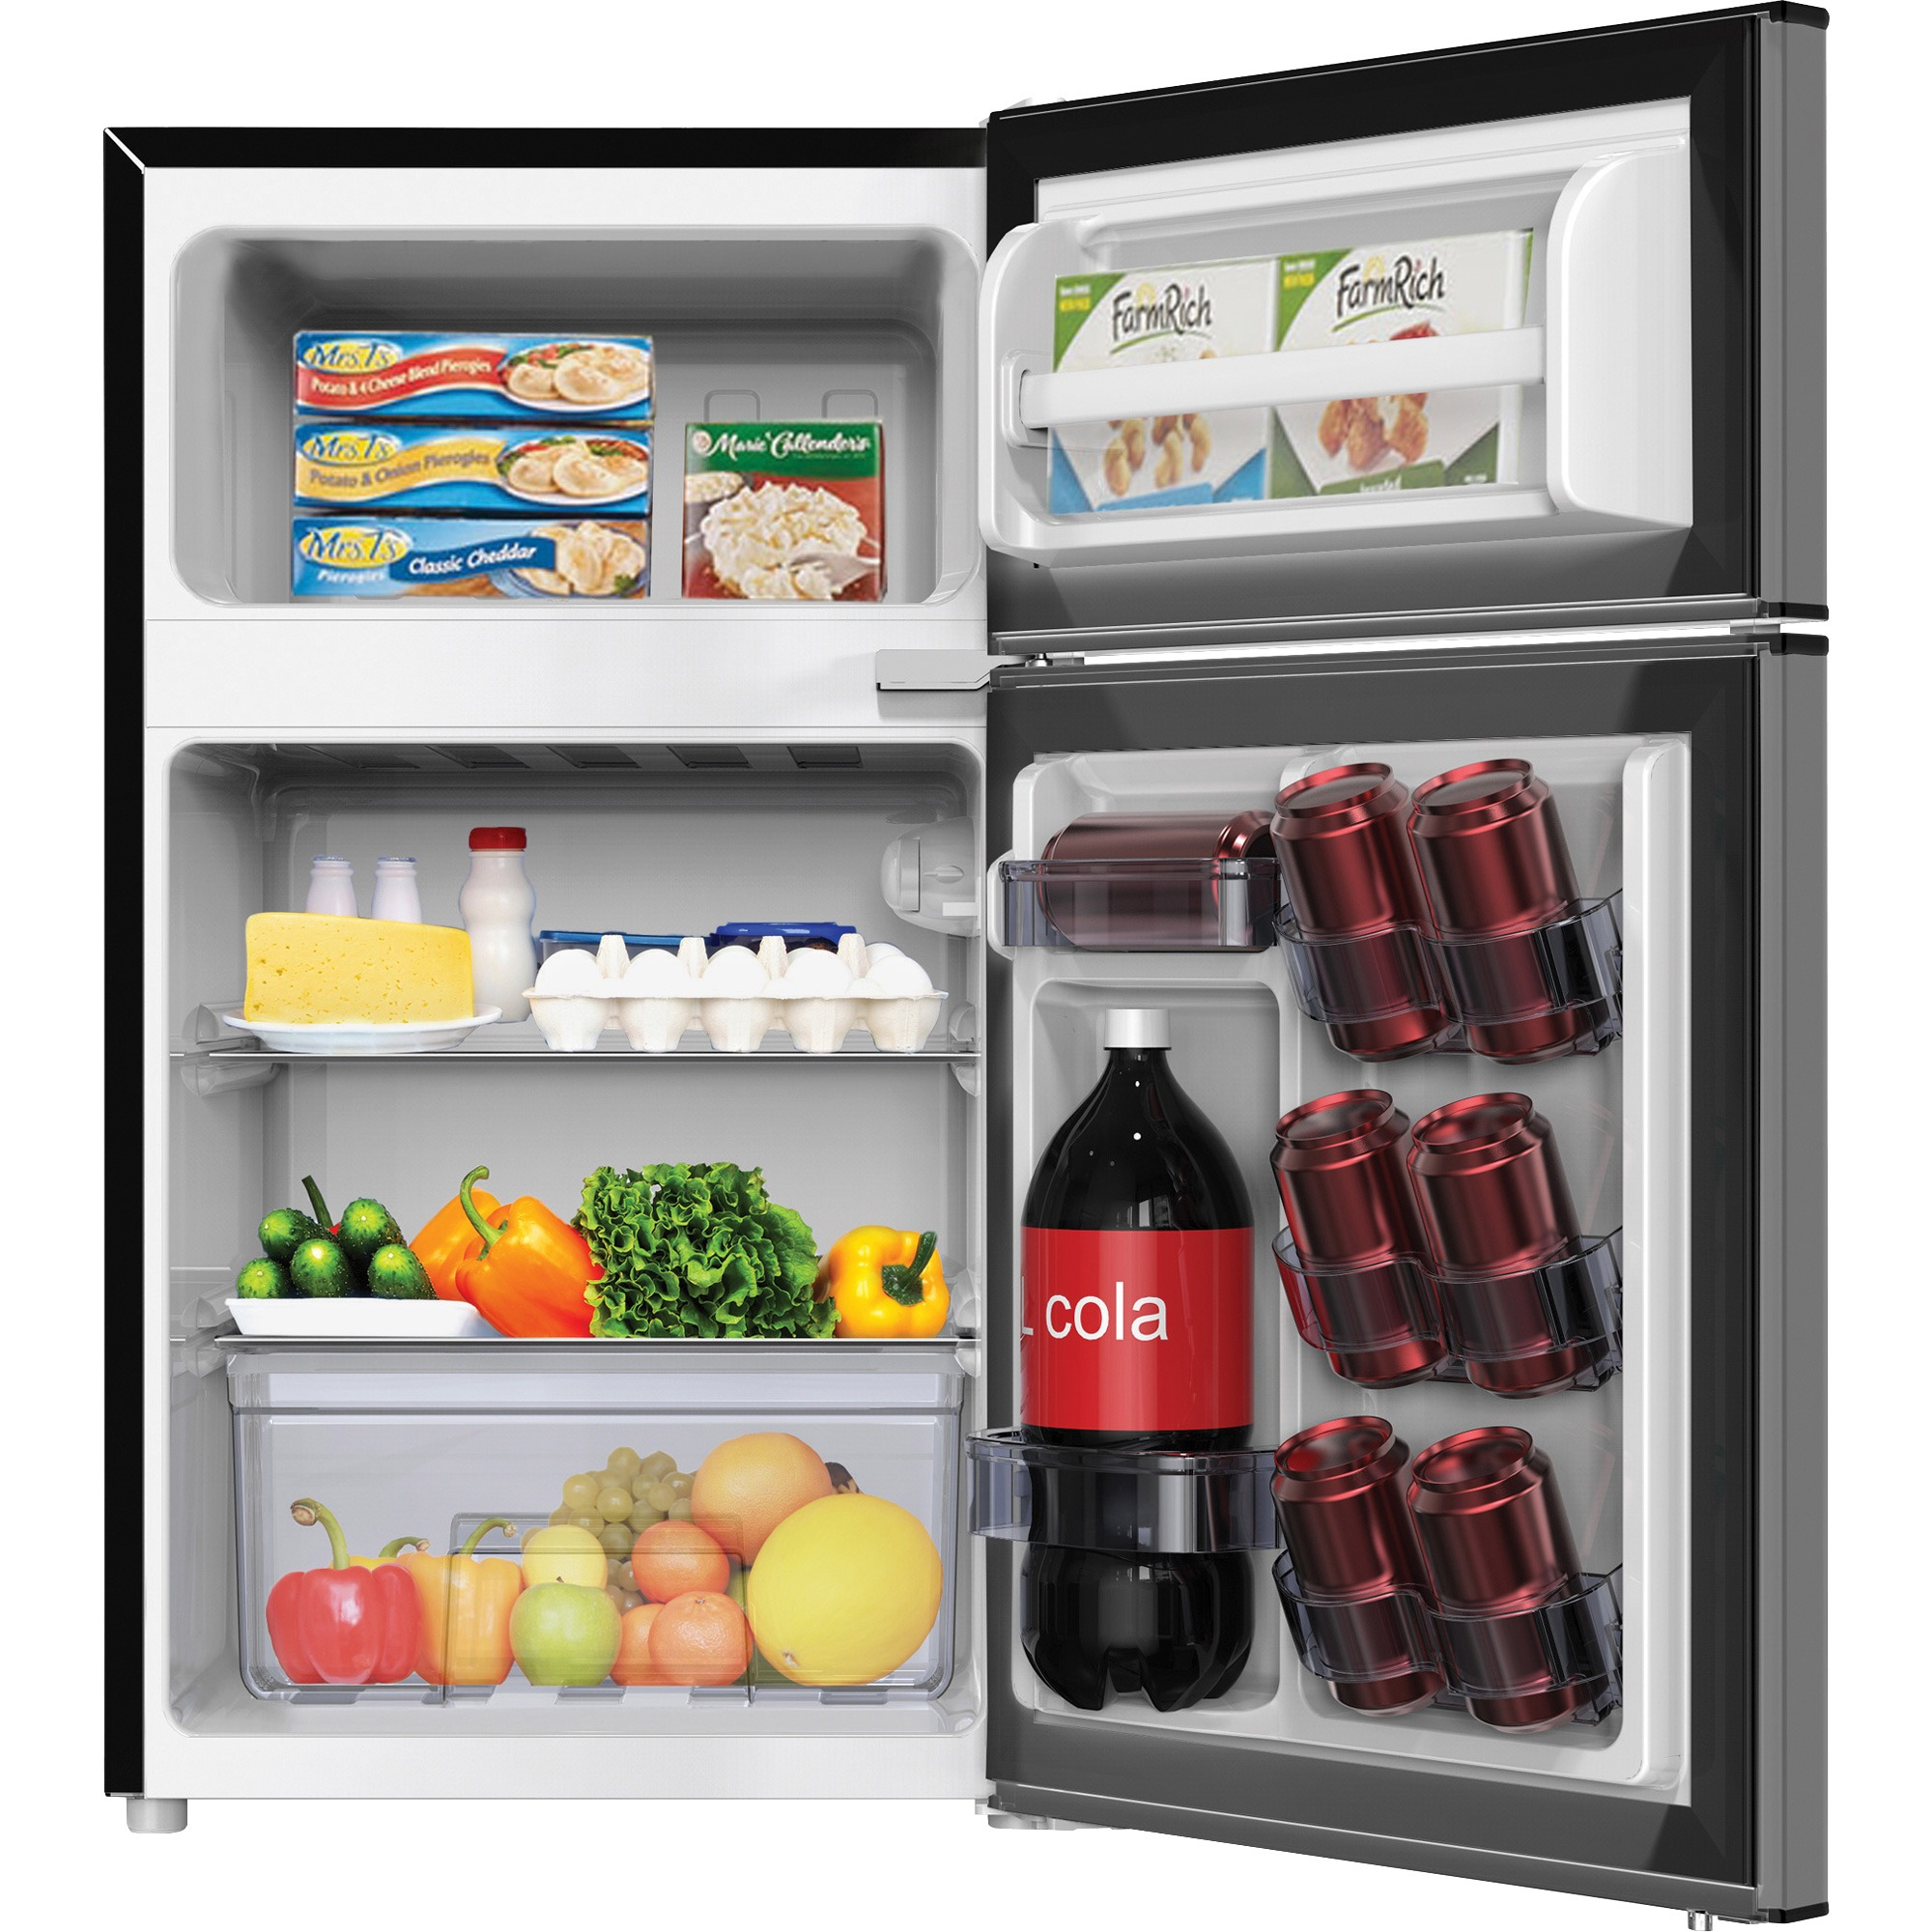 Avanti RA31B3S 3.1 CF 2dr Counterhigh Refrigerator, Black Cabinet,  Stainless Steel Door, Clear